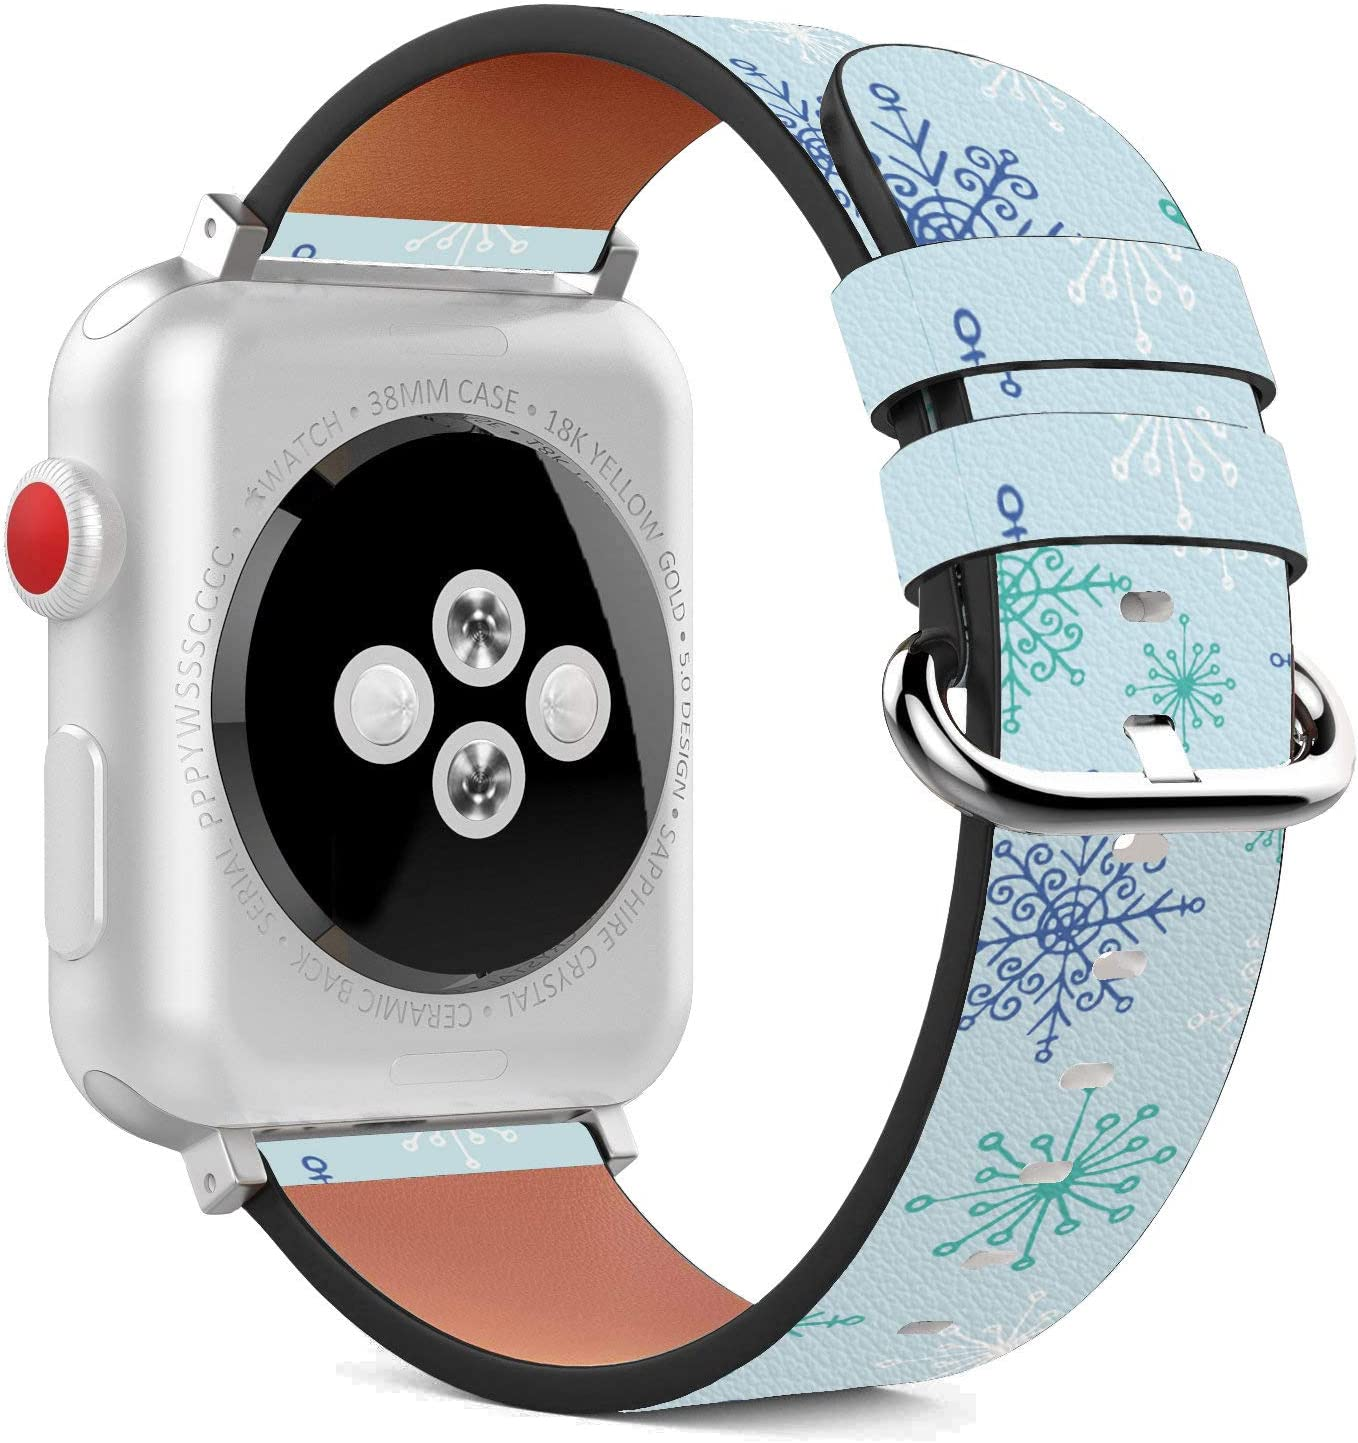 Compatible with Apple Watch - 38mm / 40mm (Serie 6/5/4/3/2/1) Leather Wristband Bracelet with Stainless Steel Clasp and Adapters - Frosty Snowflake